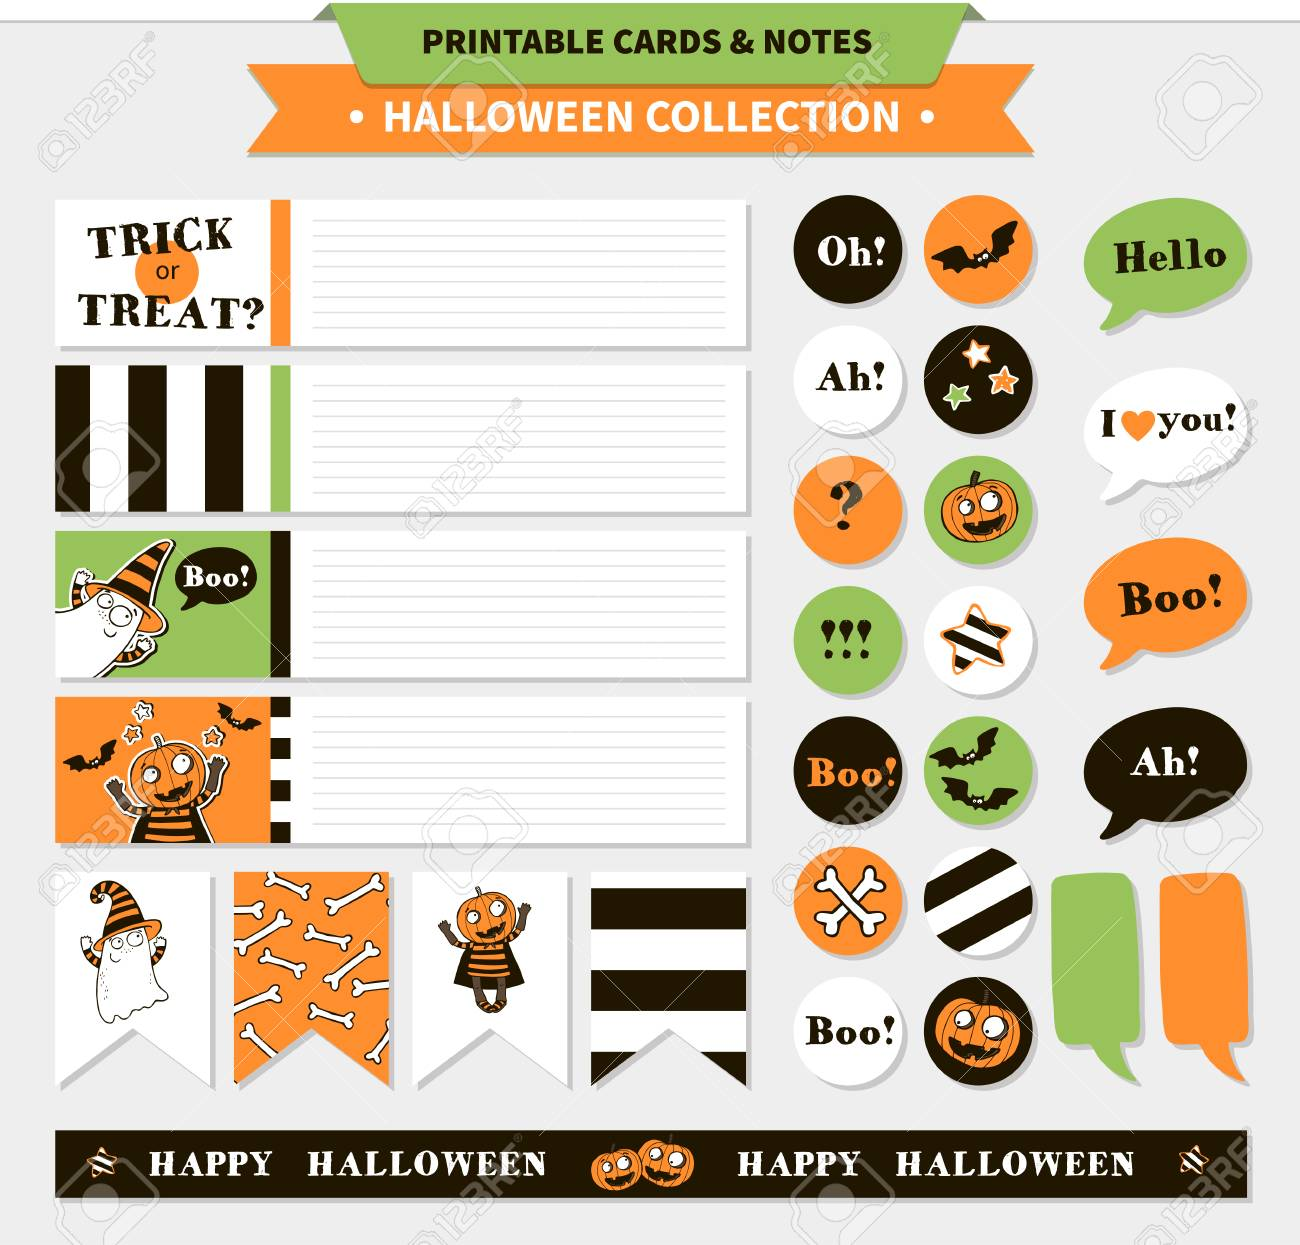 image regarding Halloween Stickers Printable identify Halloween printable vector playing cards, banners, stickers and notes..